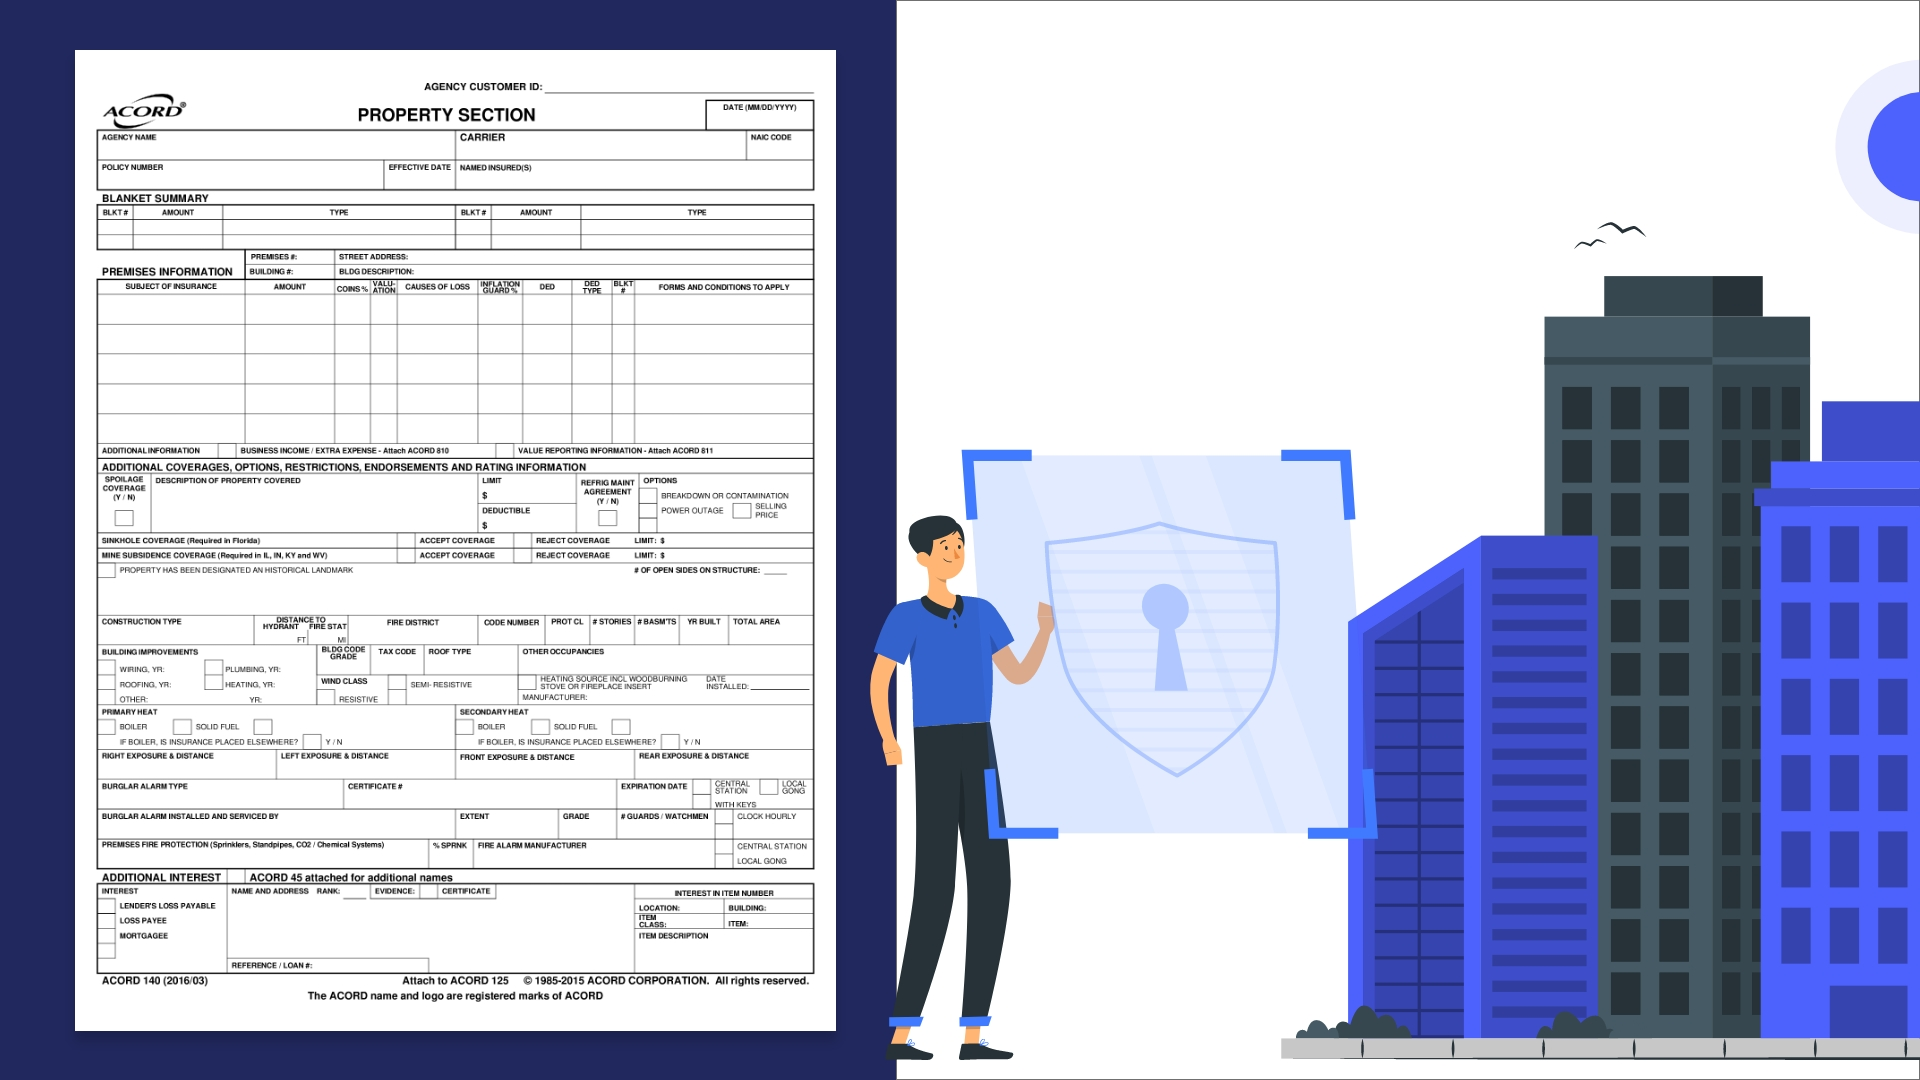 How to Process Acord 140 Forms with Automated Data Extraction